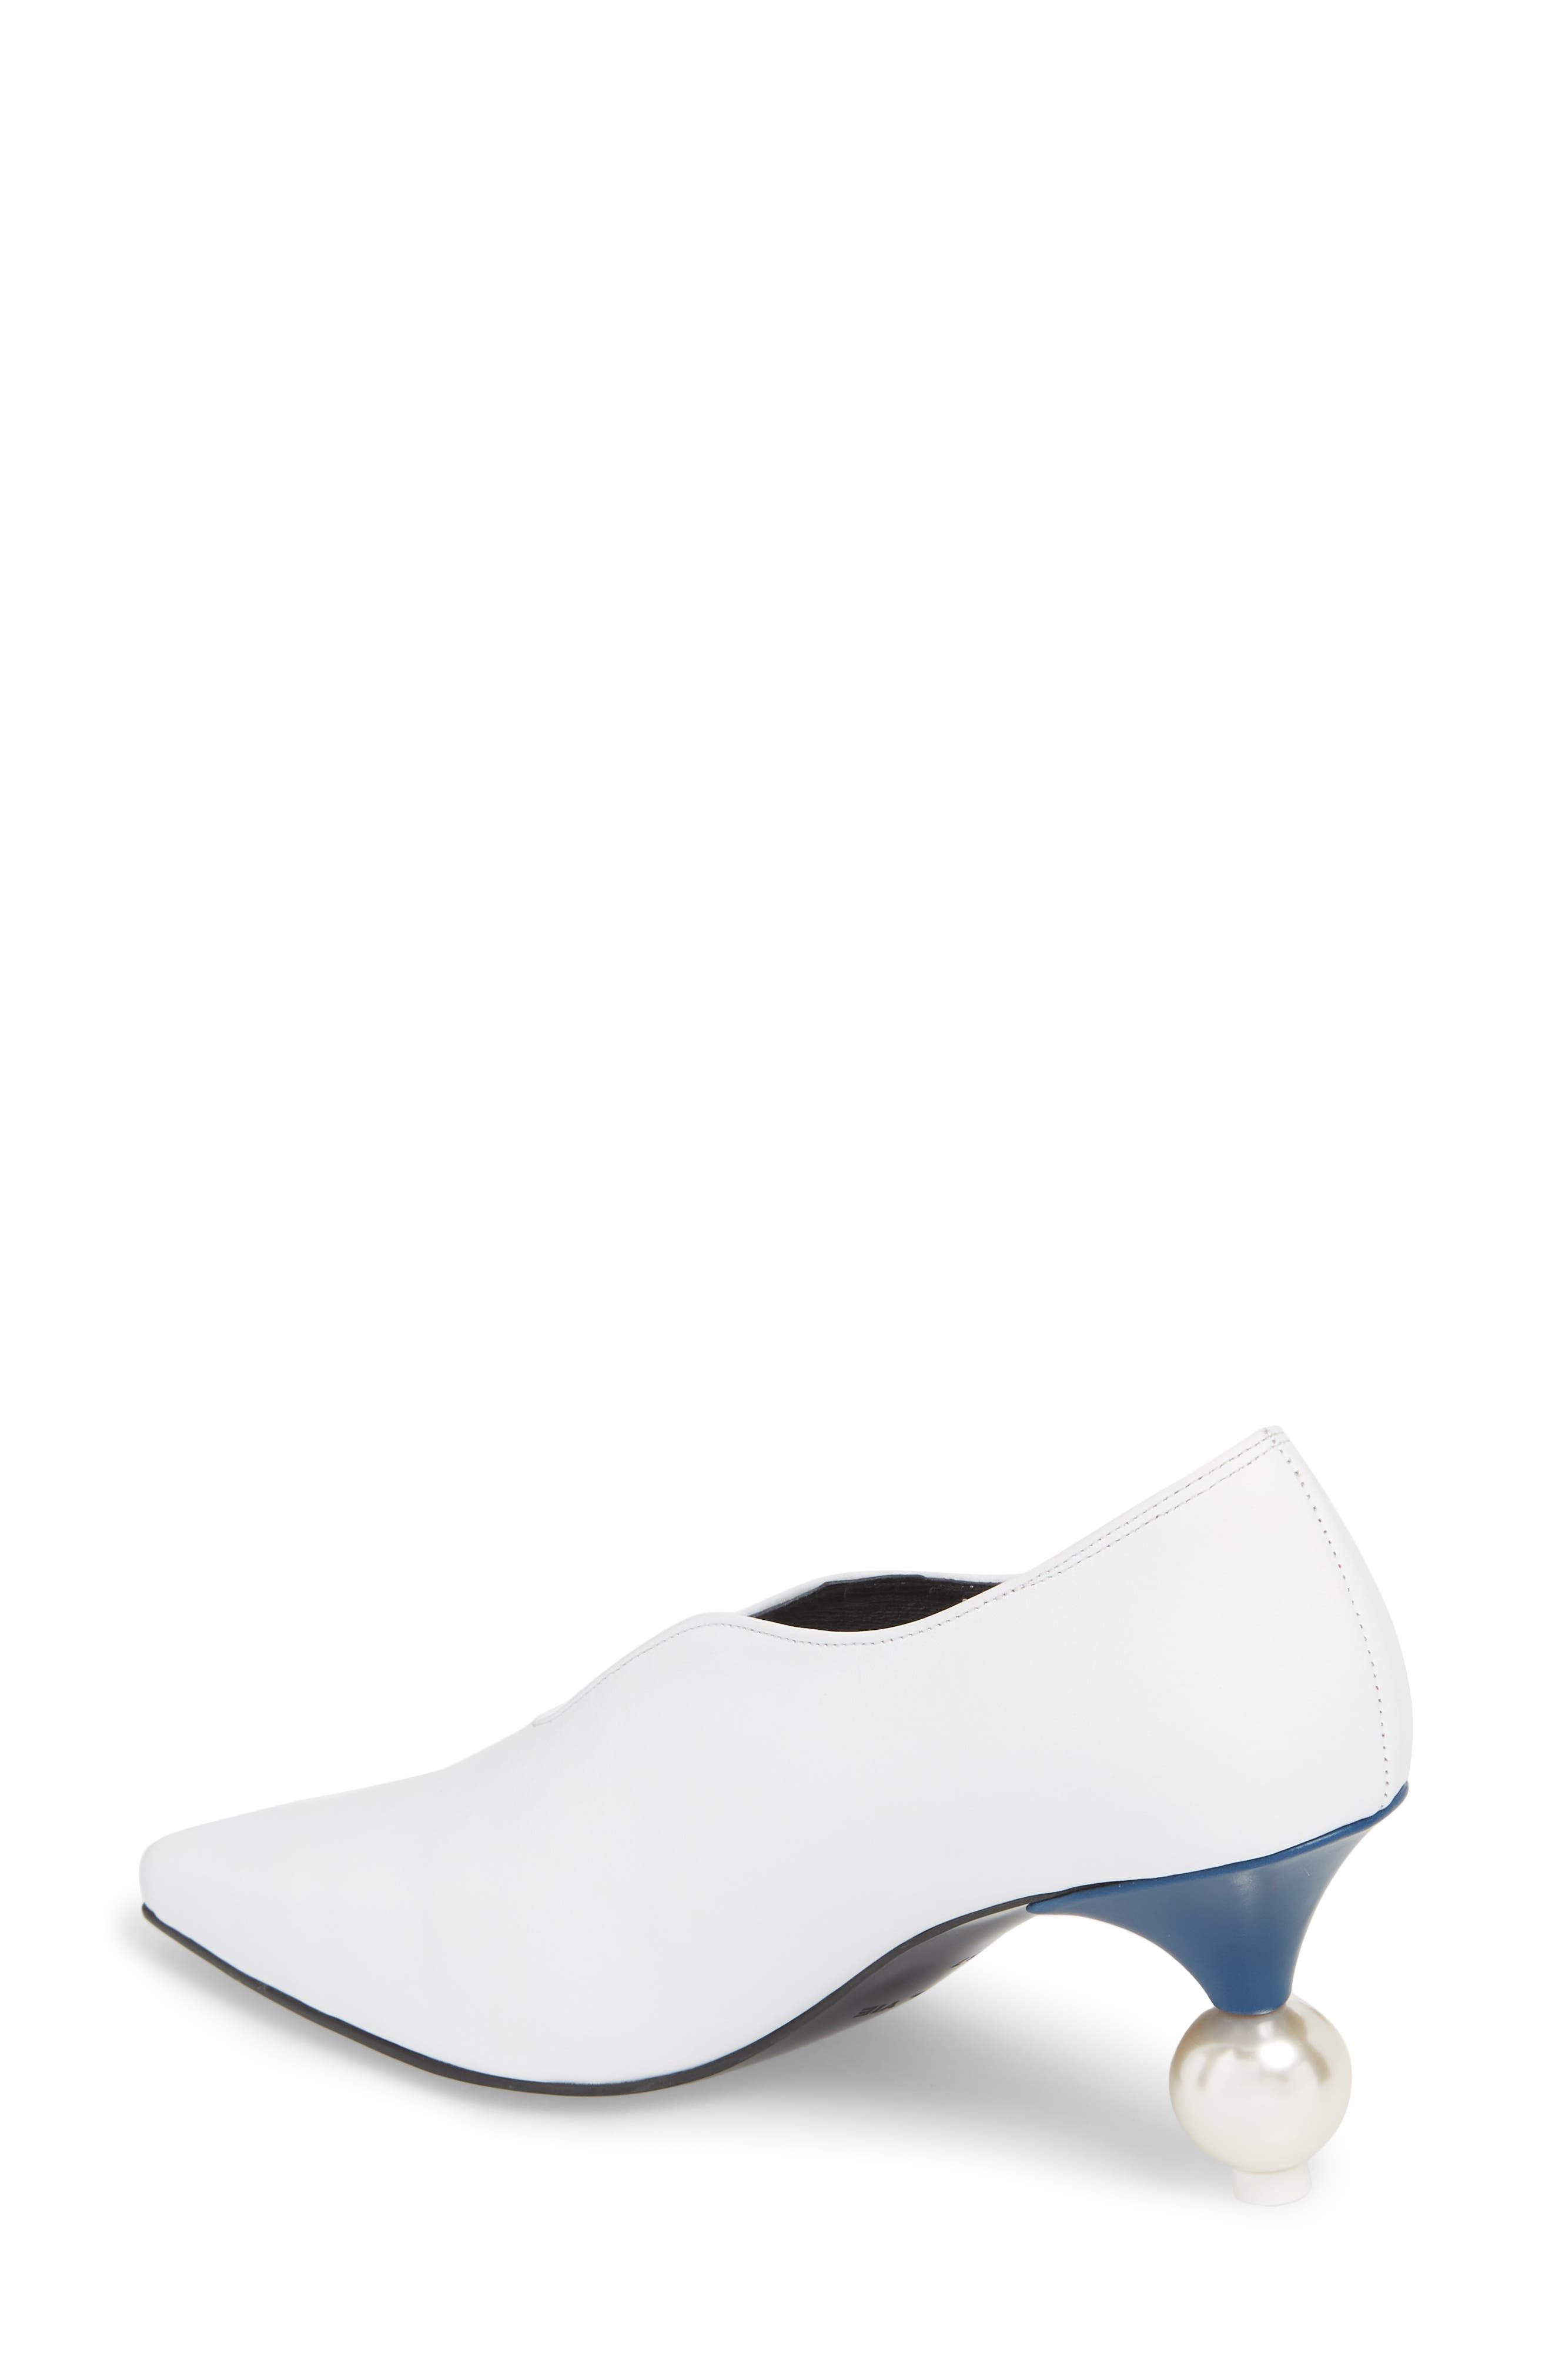 Statement Heel Pump,                             Alternate thumbnail 2, color,                             White/ Navy